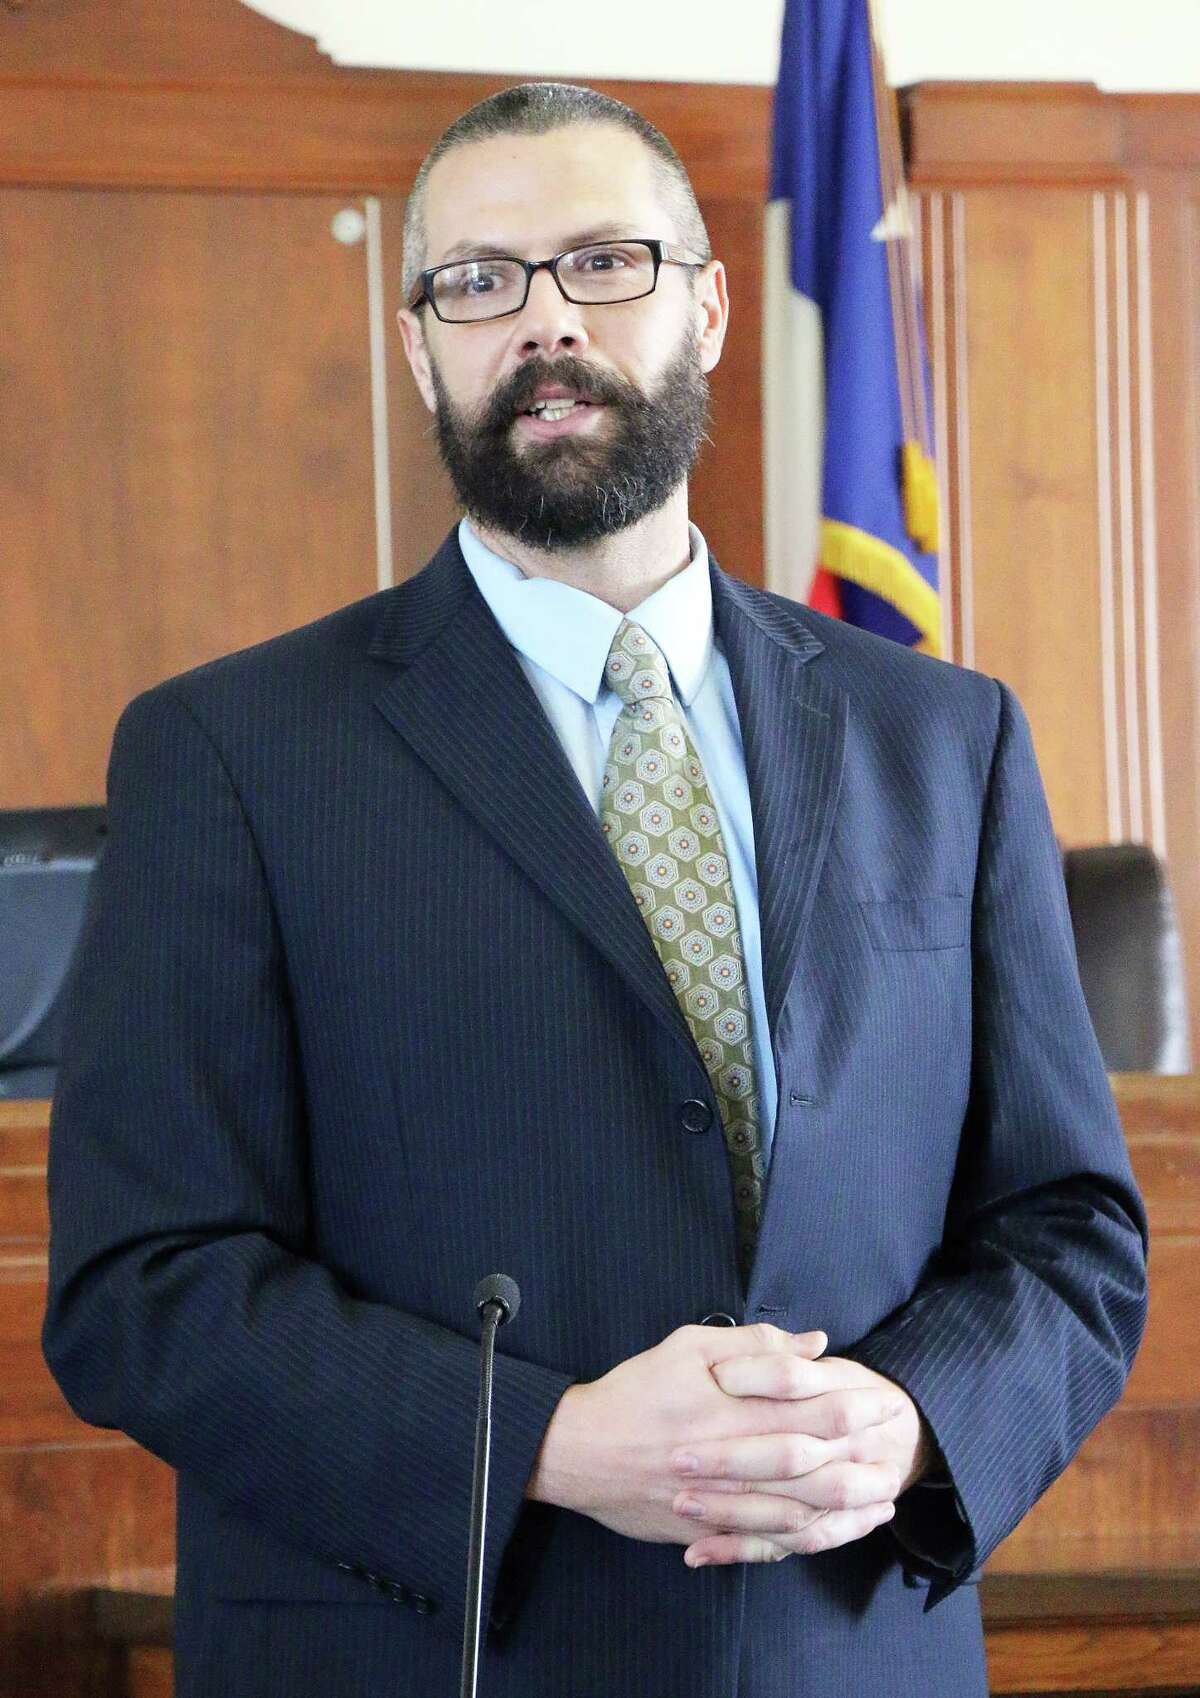 County Attorney Matt Poston cleared up the question on whether or not the Pct. 1 Commissioners position was vacant given the replacement of former Pct. 1 Commissioner Mike McCarty. After discussions with the Secretary of State, the position remains filled until the criminal trial or civil trial is completed.